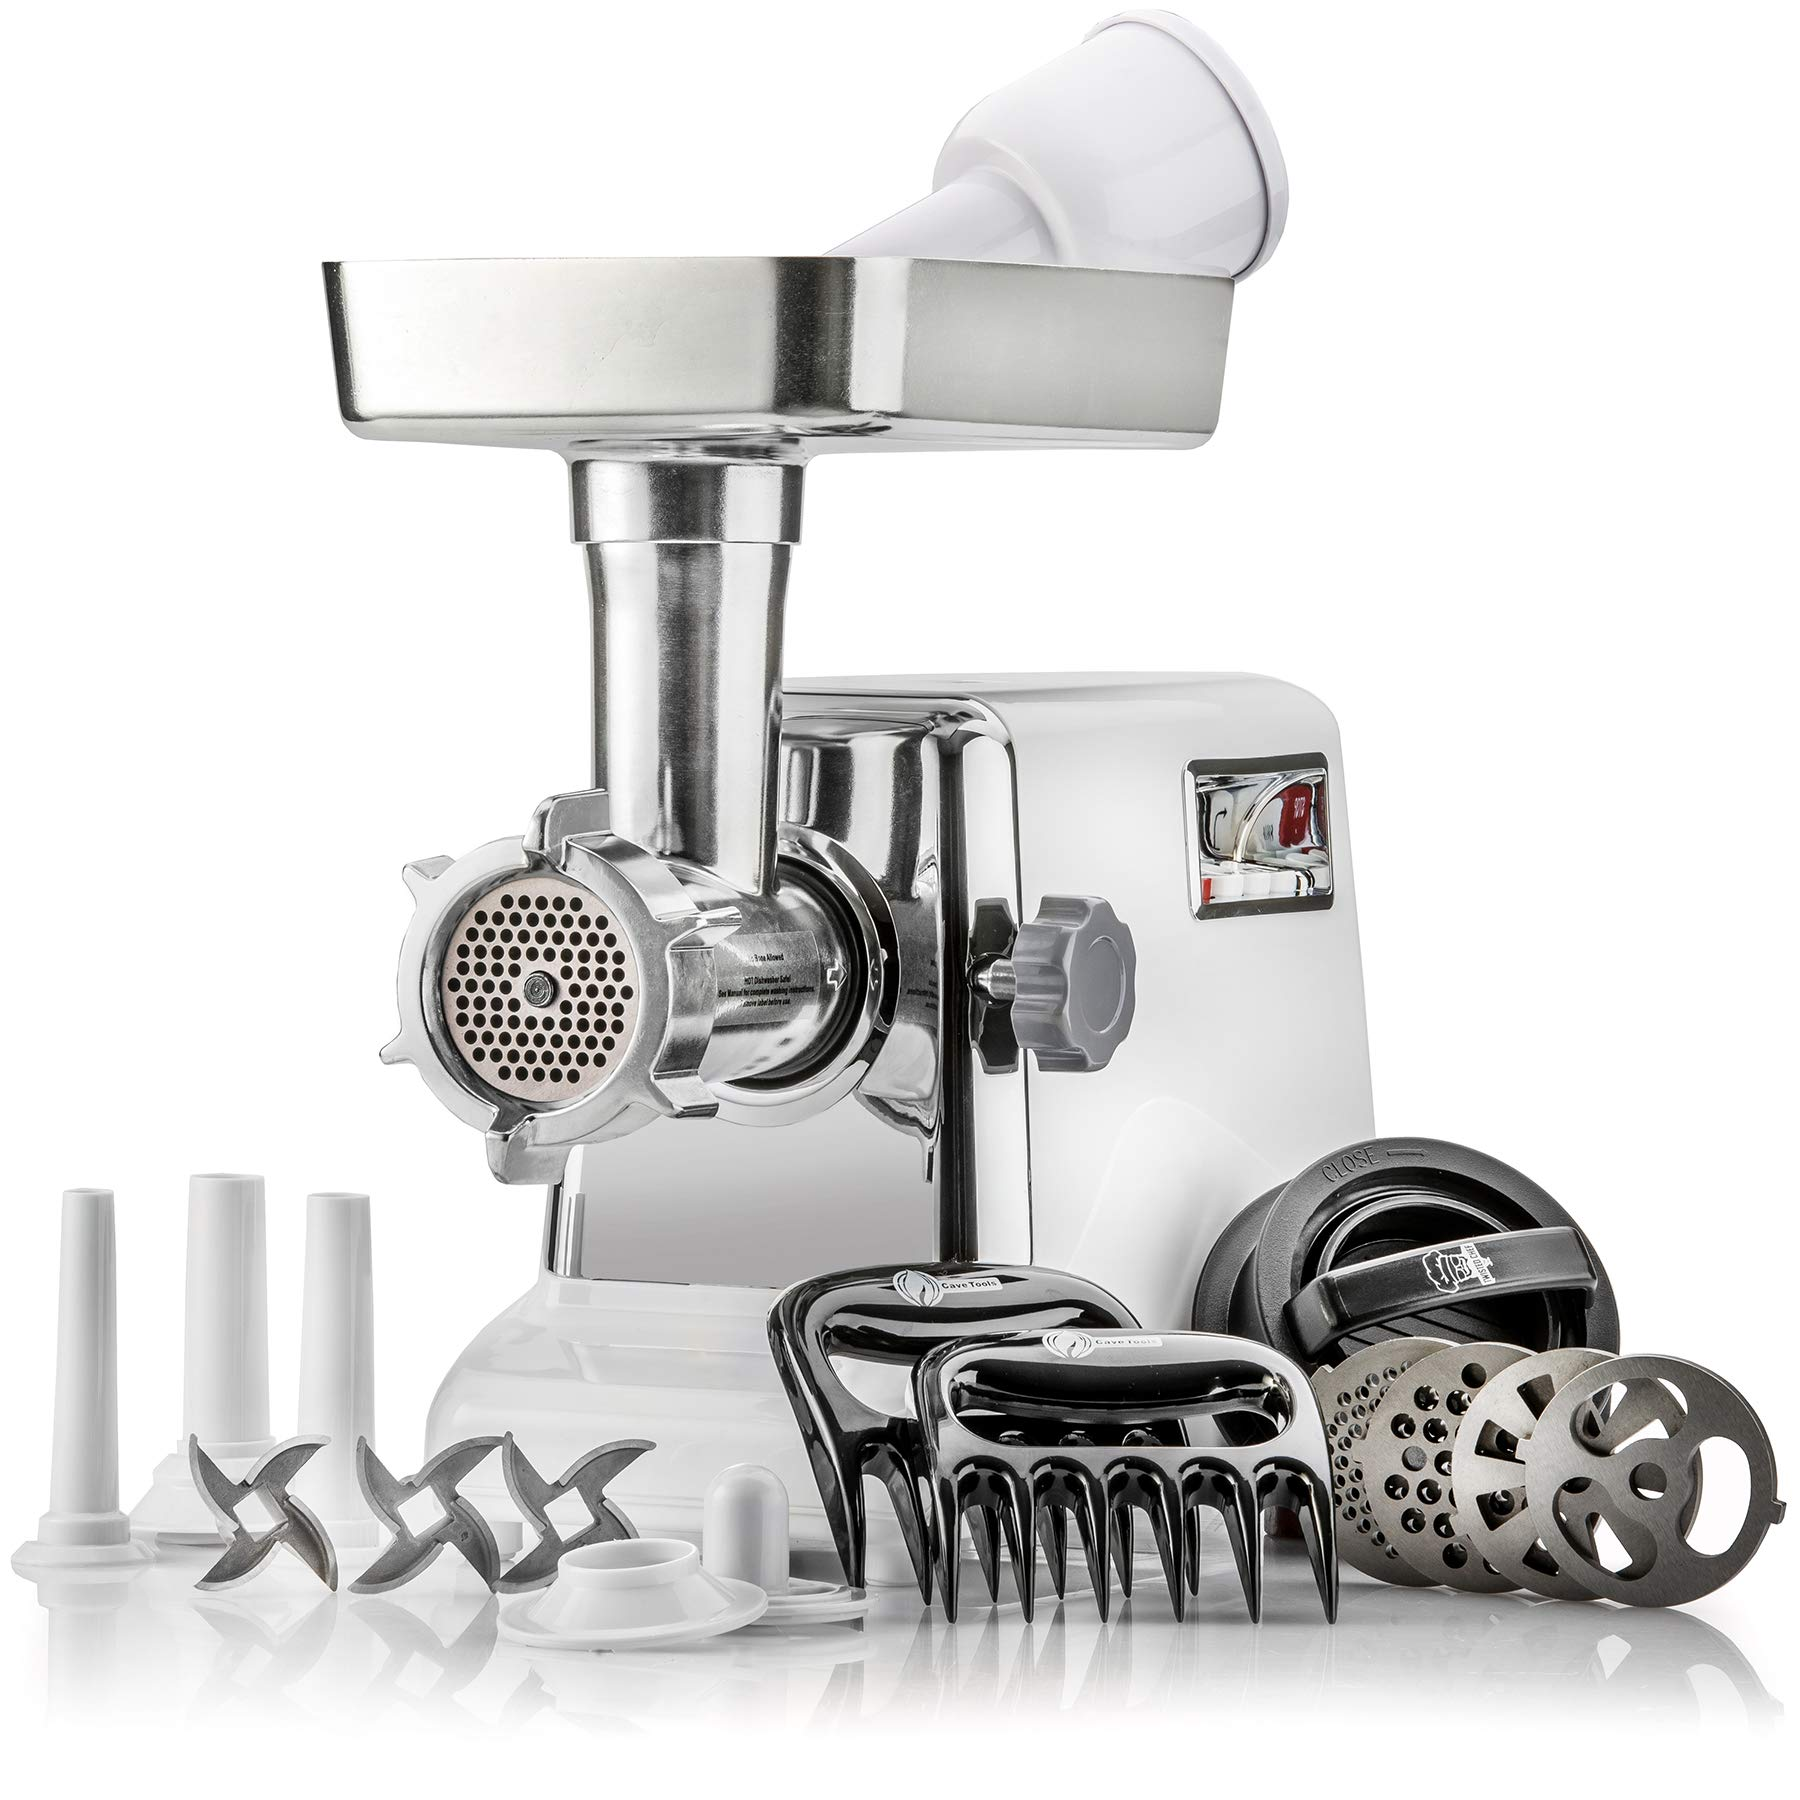 The Powerful STX Turboforce Classic 3000 Series Electric Meat Grinder & Sausage Stuffer: 4 Grinding Plates, 3 - S/S Blades, Sausage Tubes & Kubbe Maker. 2 Free Meat Claws & 3 in 1 Burger-Slider Maker! by STX INTERNATIONAL